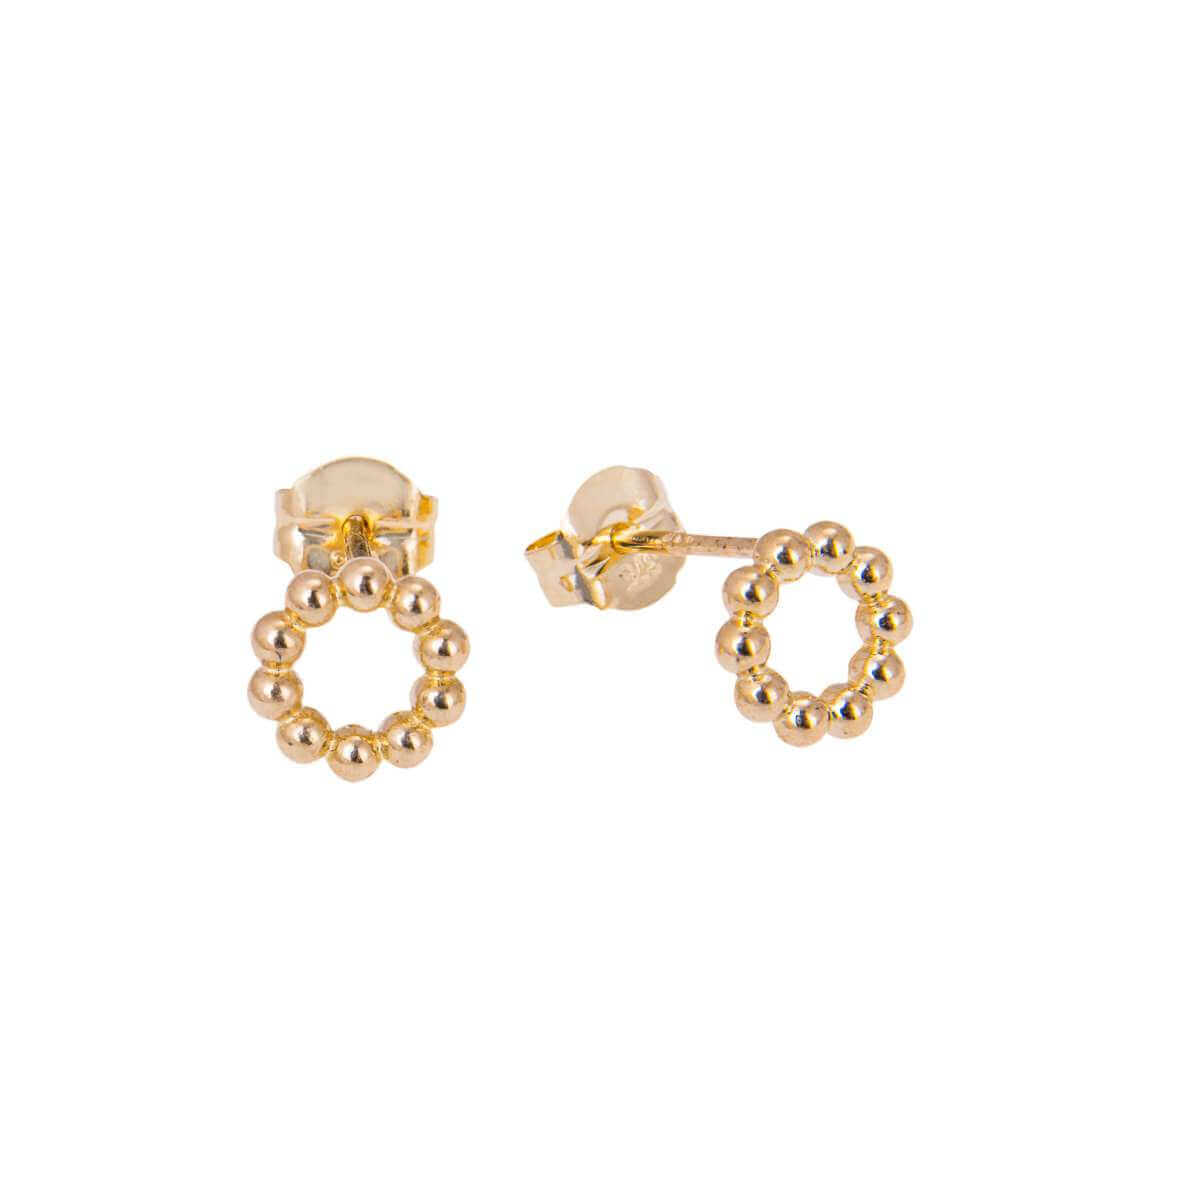 9ct Gold Bobble Beaded Open Circle Stud Earrings